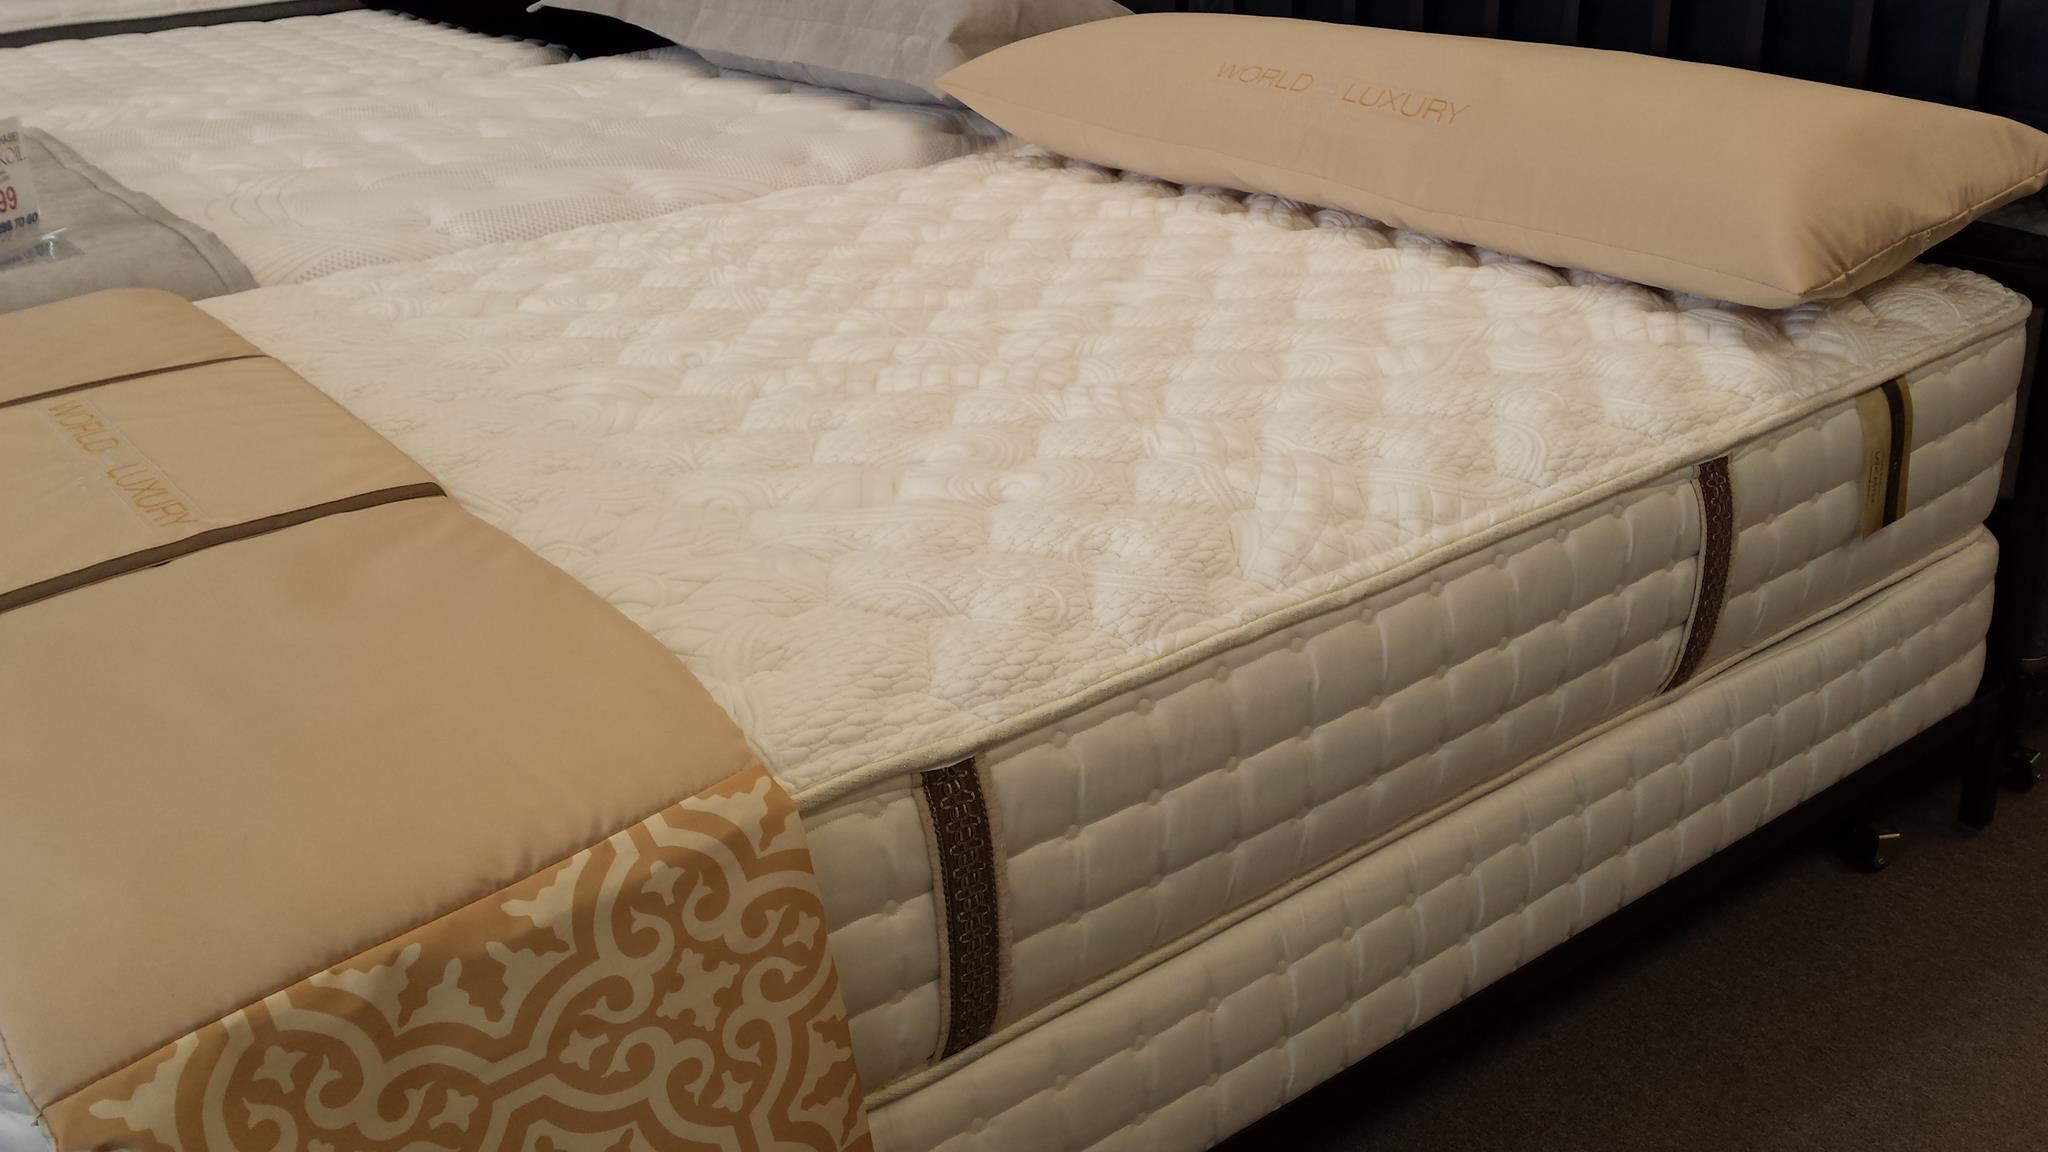 Mattress To Go – Natural Vita Talalay Latex Mattress Store In Shelby Township Mi